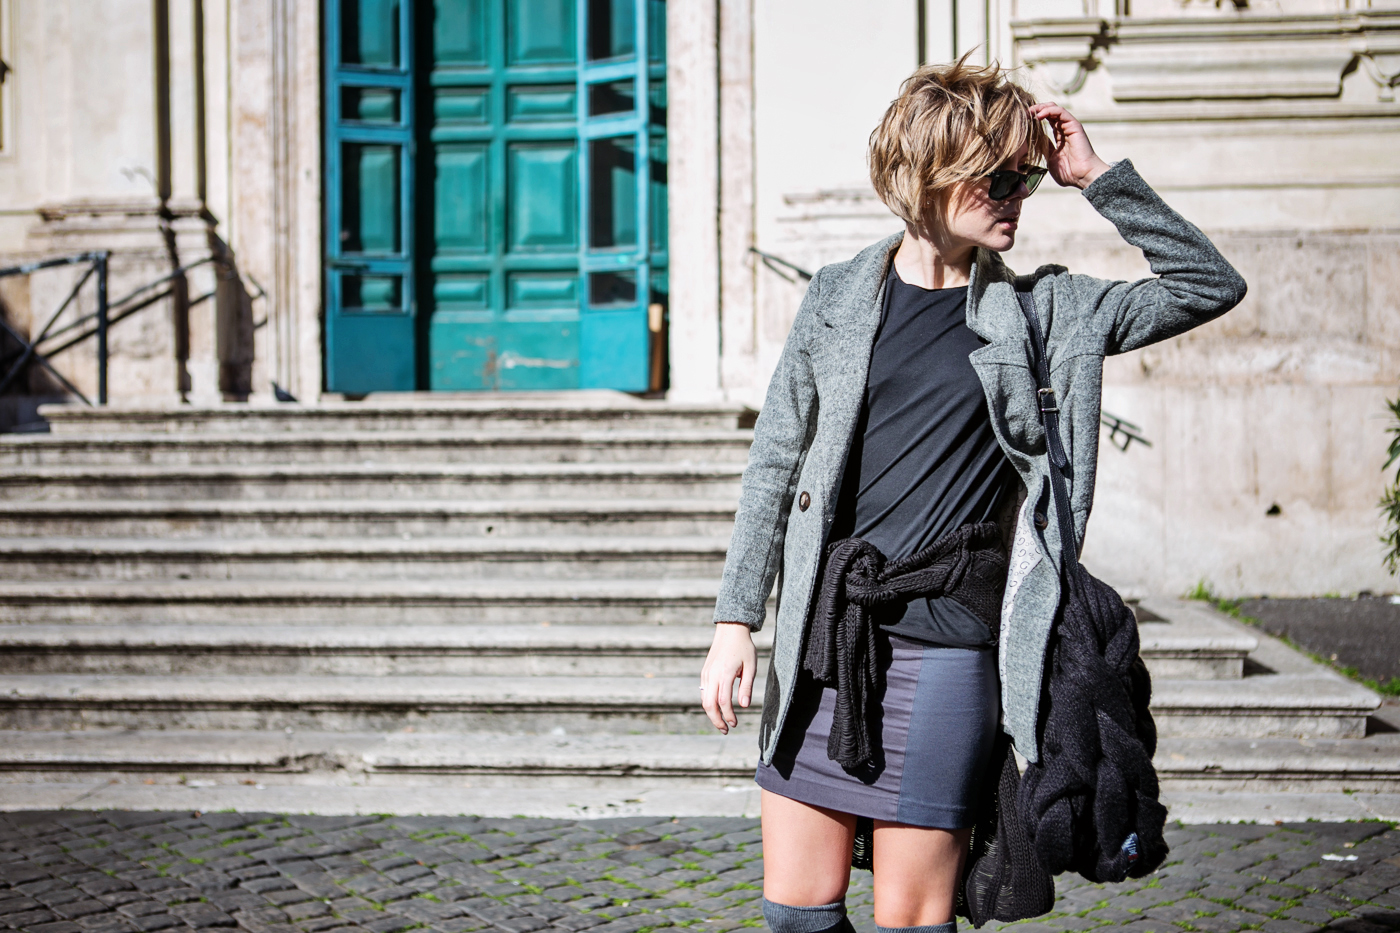 darya kamalova from thecablook com during the trip to Rome walking in the center of the city and wearing chicwish grey coat and laced up booties with proenza schouler ps11 black leather bag-28